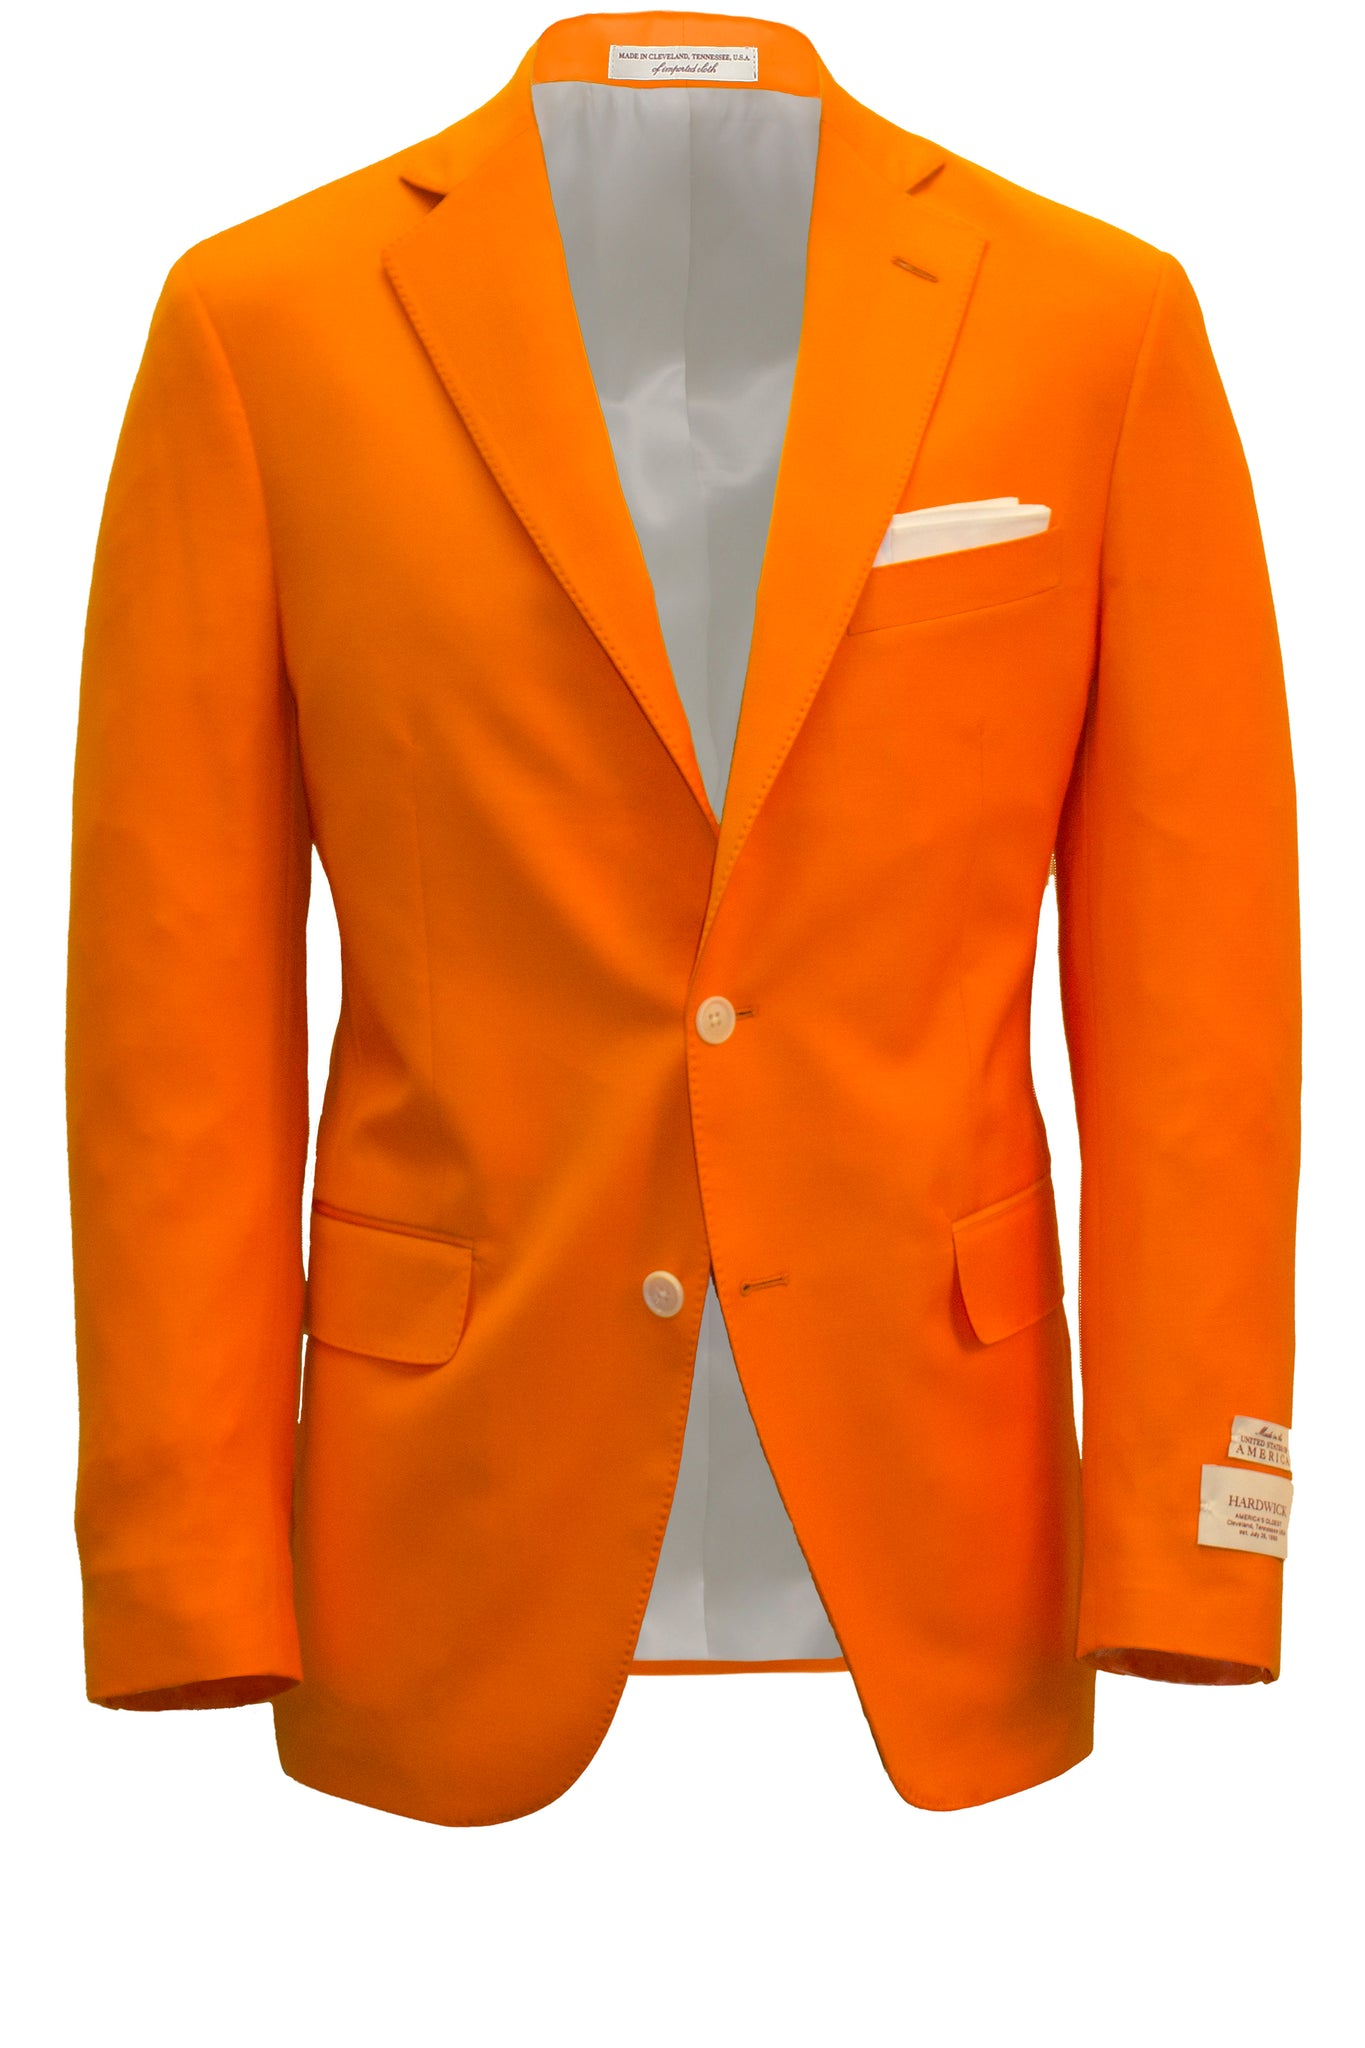 Men's Modern Fit Volunteer Orange Wool Blazer -  Hardwick.com